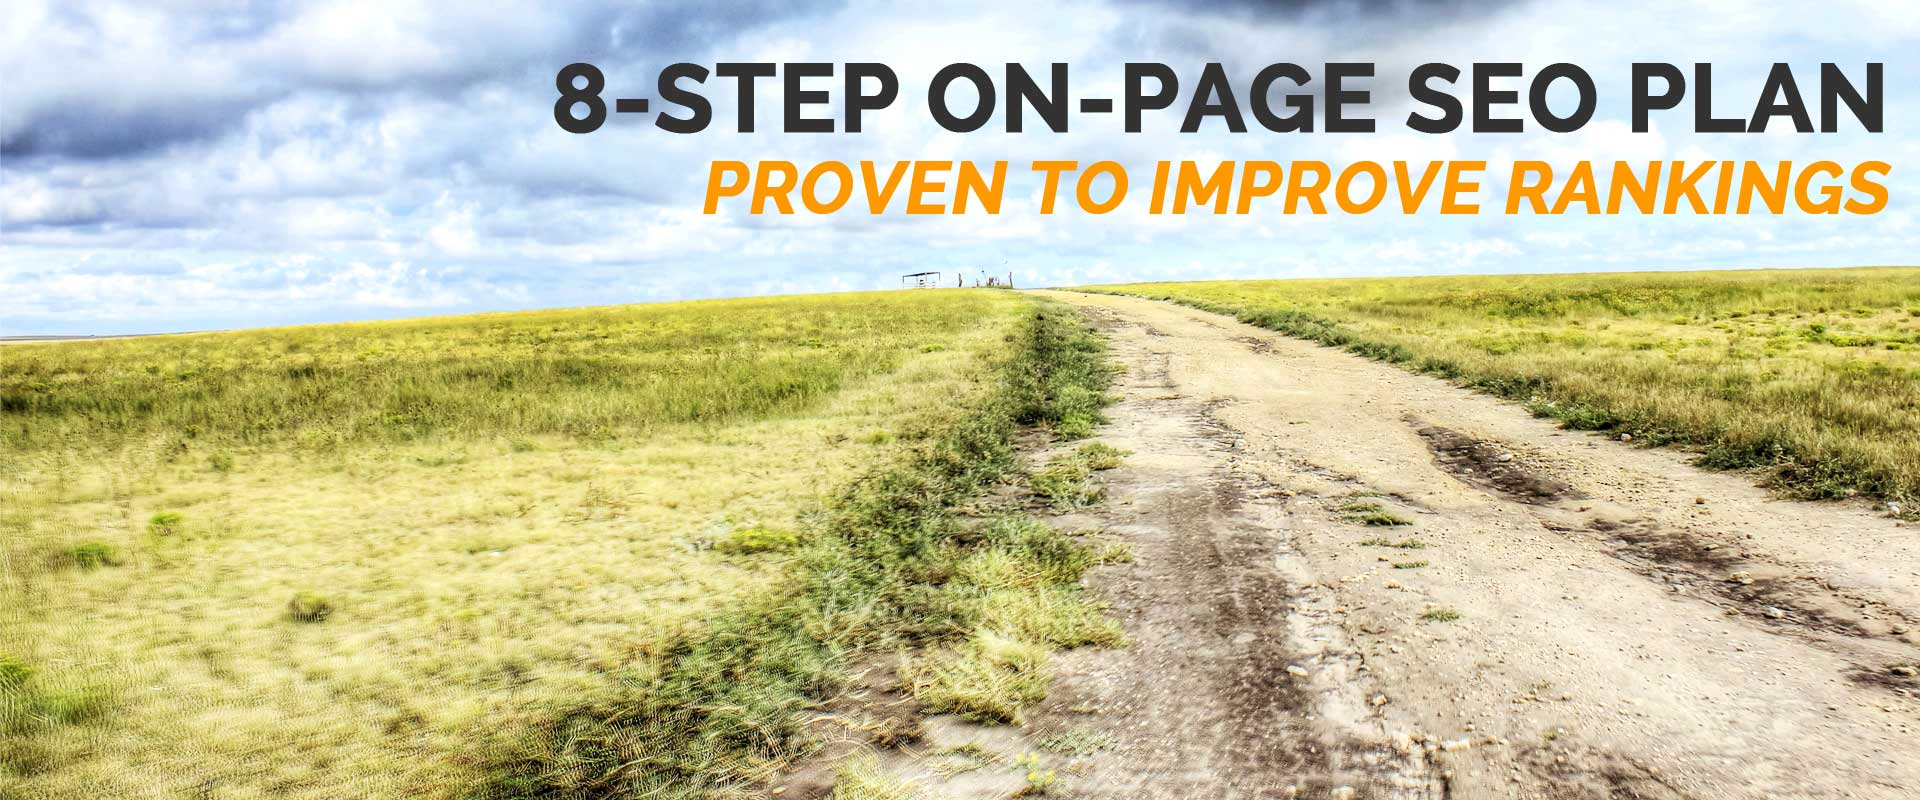 8-step-on-page-seo-plan